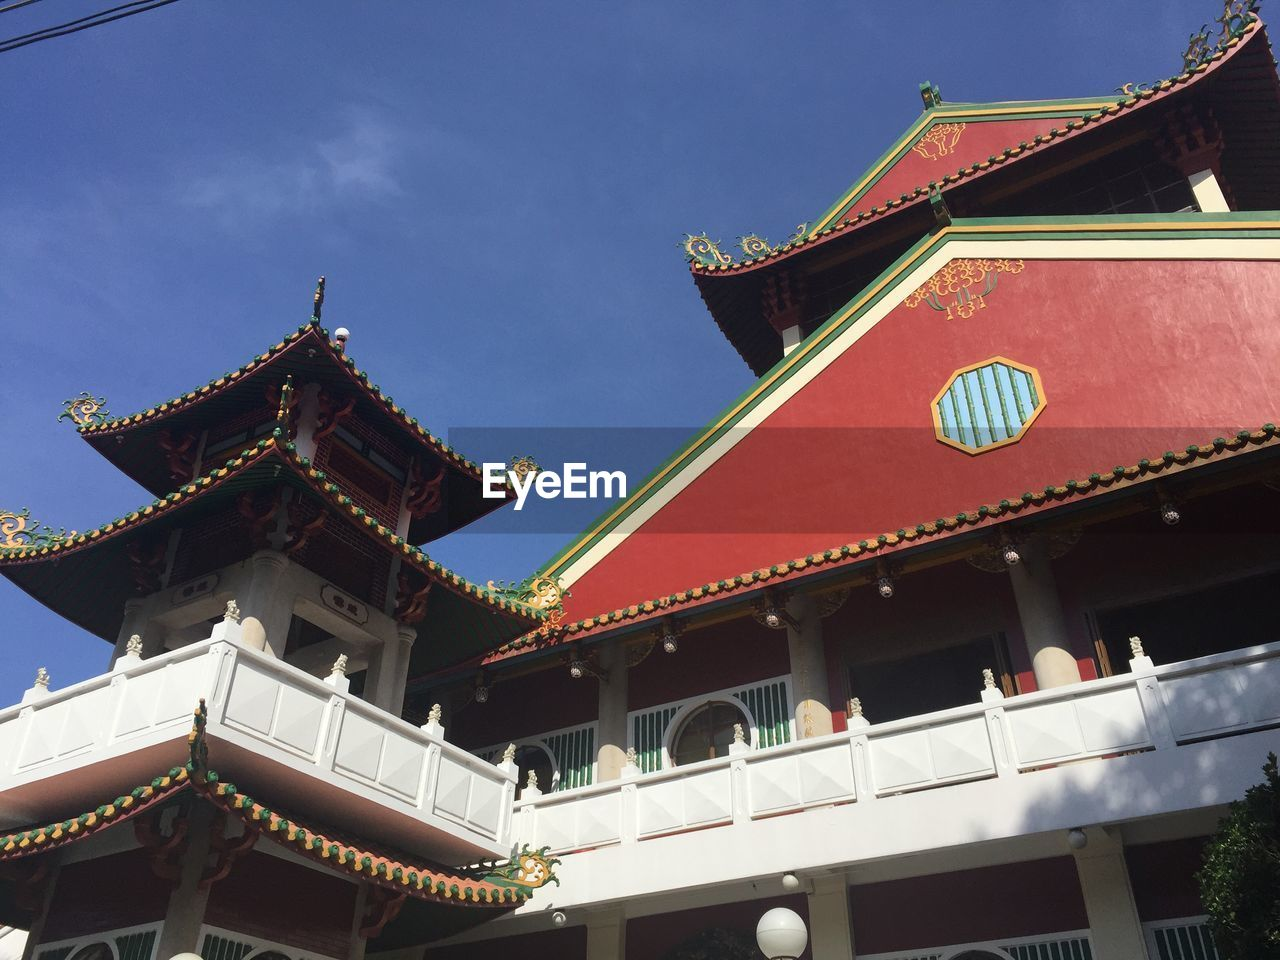 architecture, built structure, building exterior, religion, low angle view, pagoda, place of worship, eaves, cultures, spirituality, traditional building, travel destinations, no people, outdoors, tradition, day, dragon, roof, sky